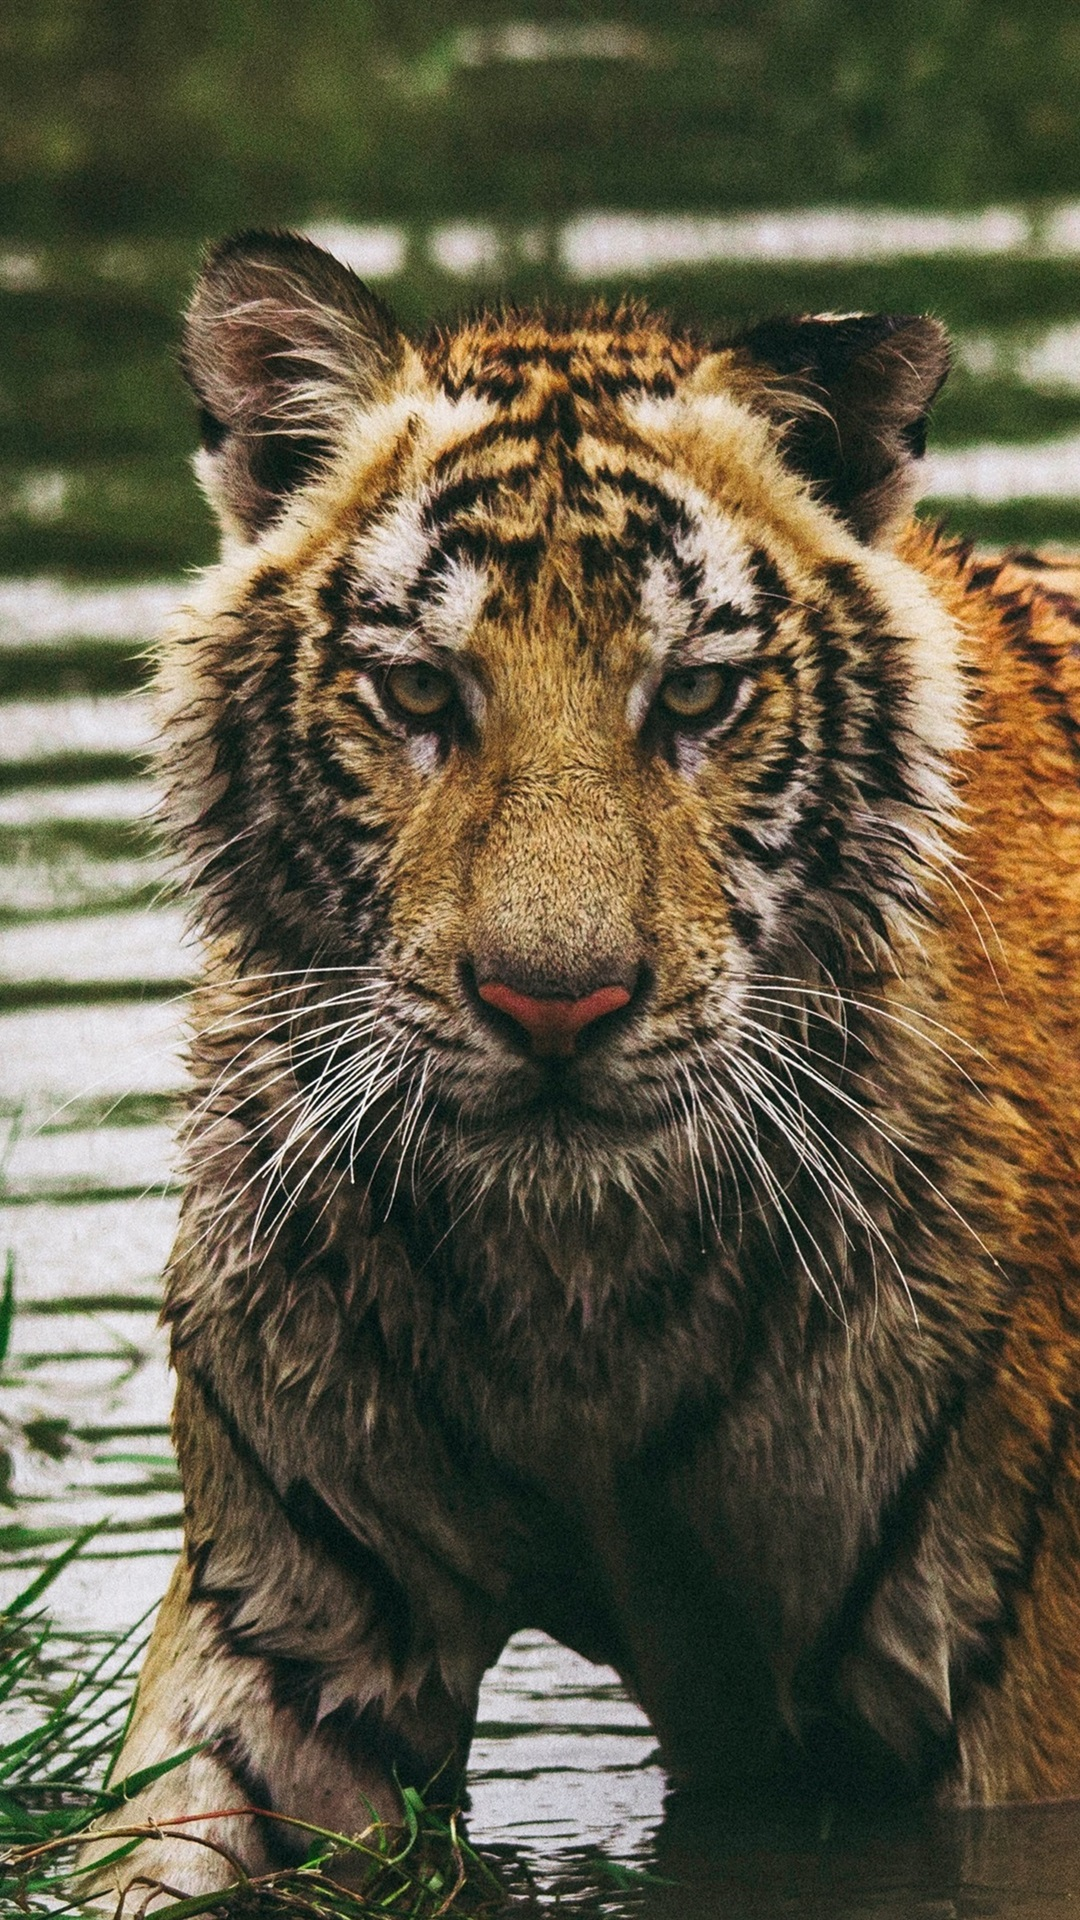 Wet Tiger In Water Look At You 1080x1920 Iphone 8766s Plus